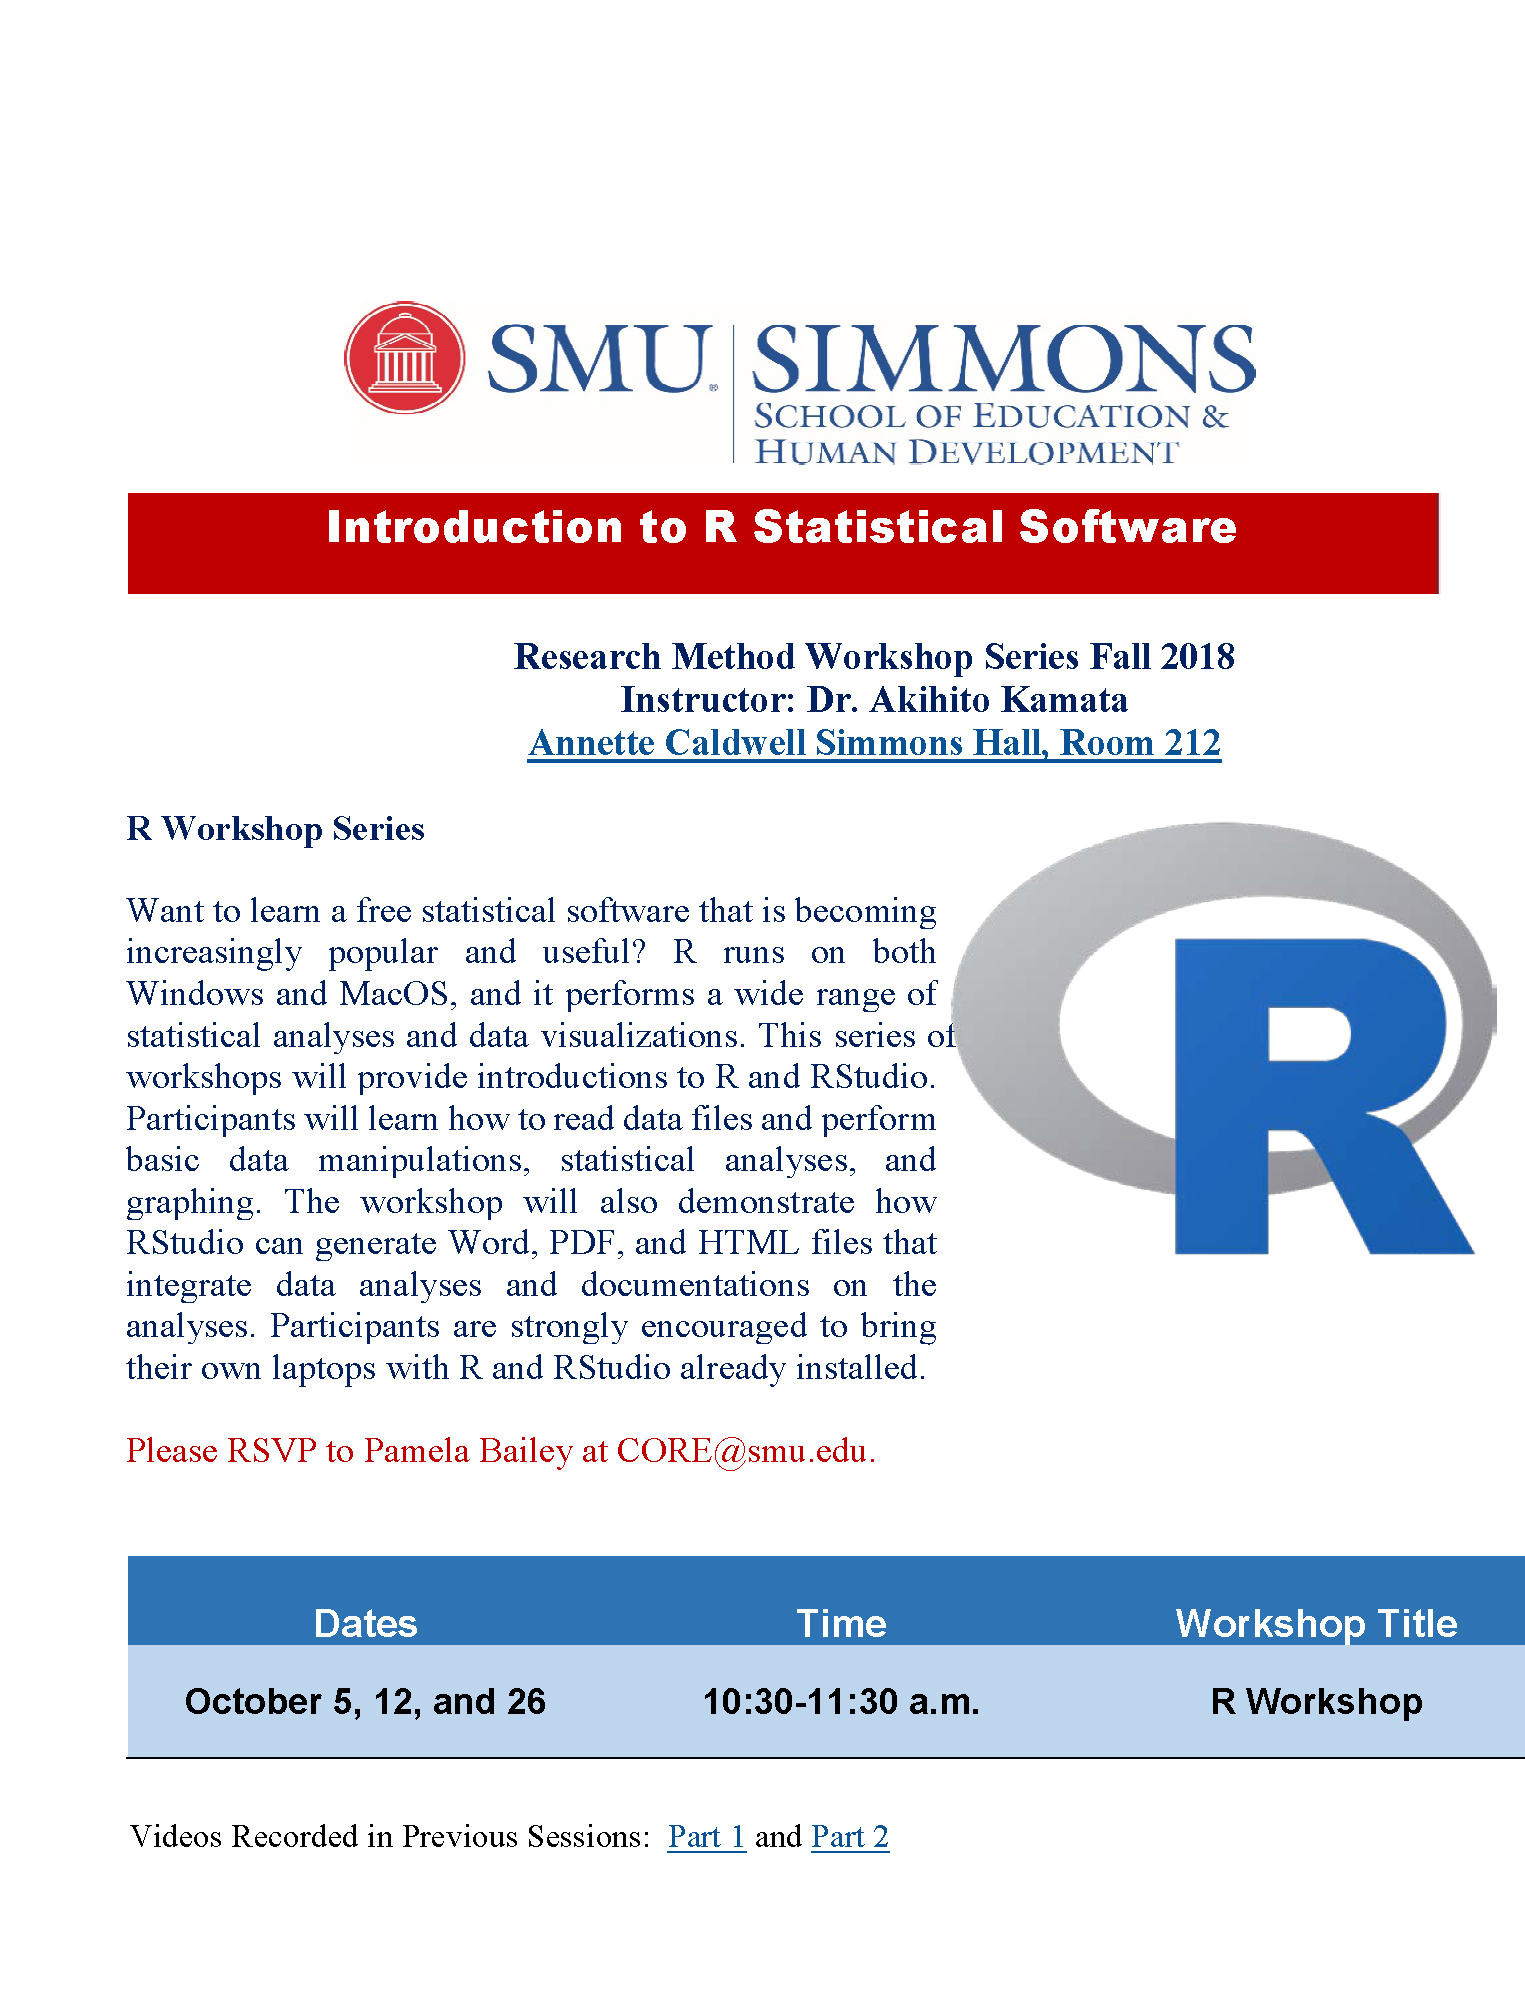 simmons school of education and human development research method